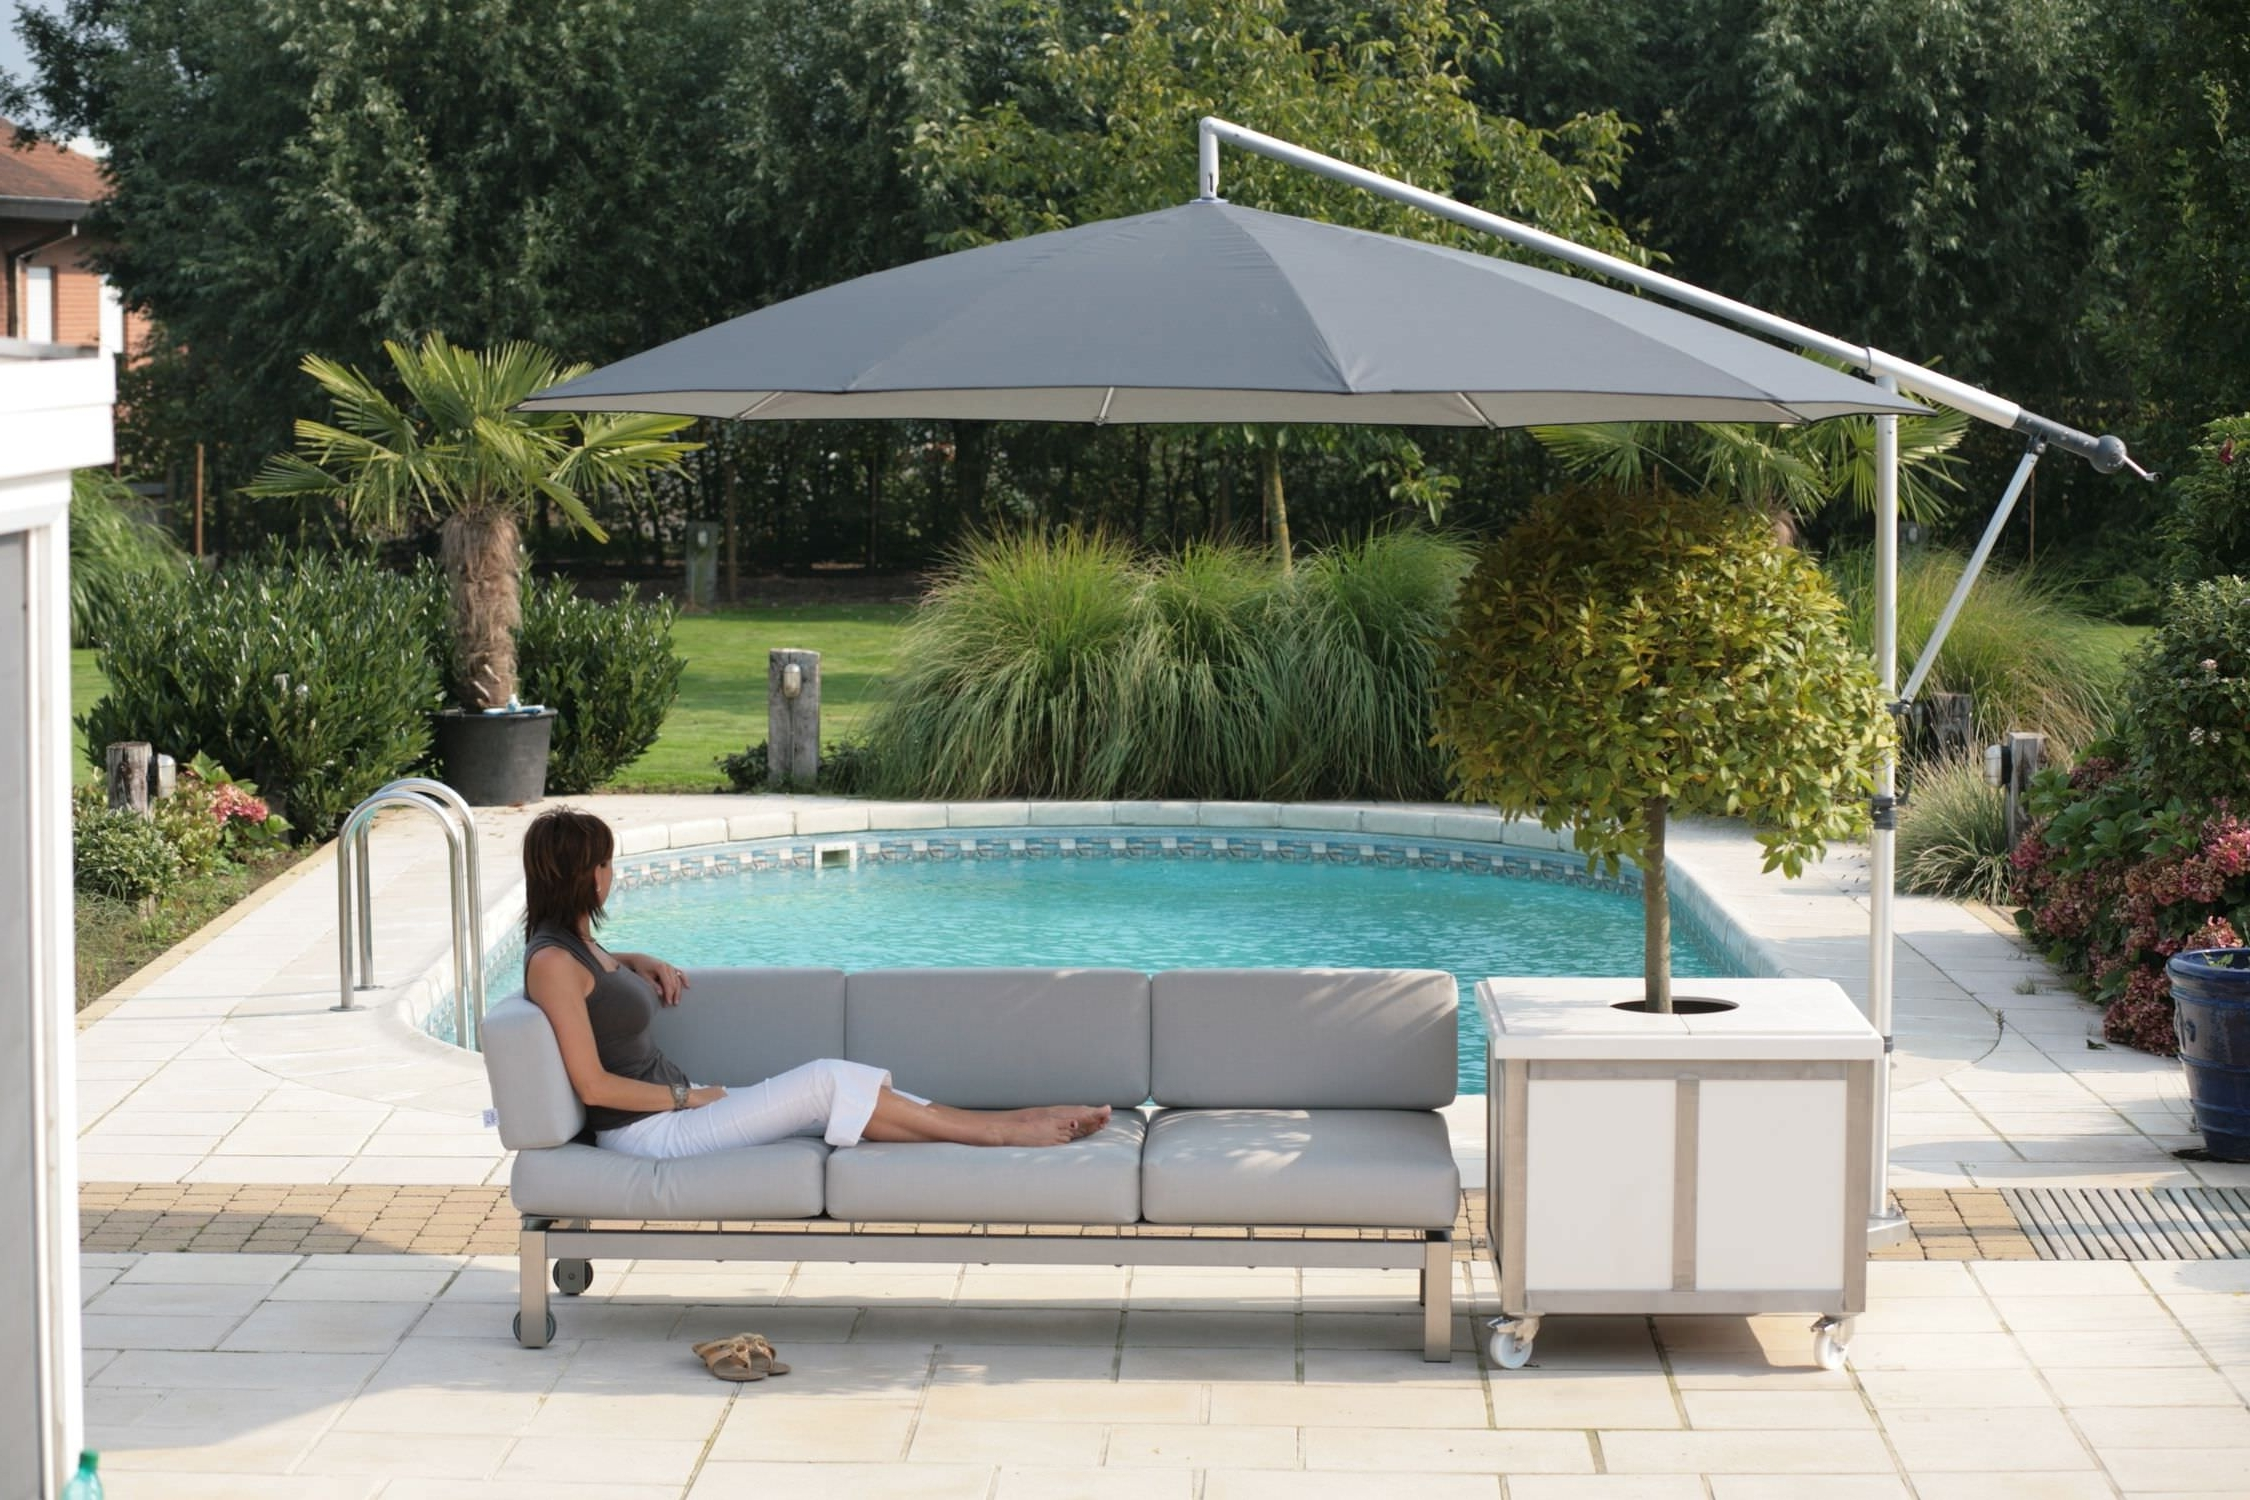 Cheap Patio Umbrellas Intended For Famous Offset Patio Umbrella Base Weights : Offset Patio Umbrella And A (Gallery 5 of 20)